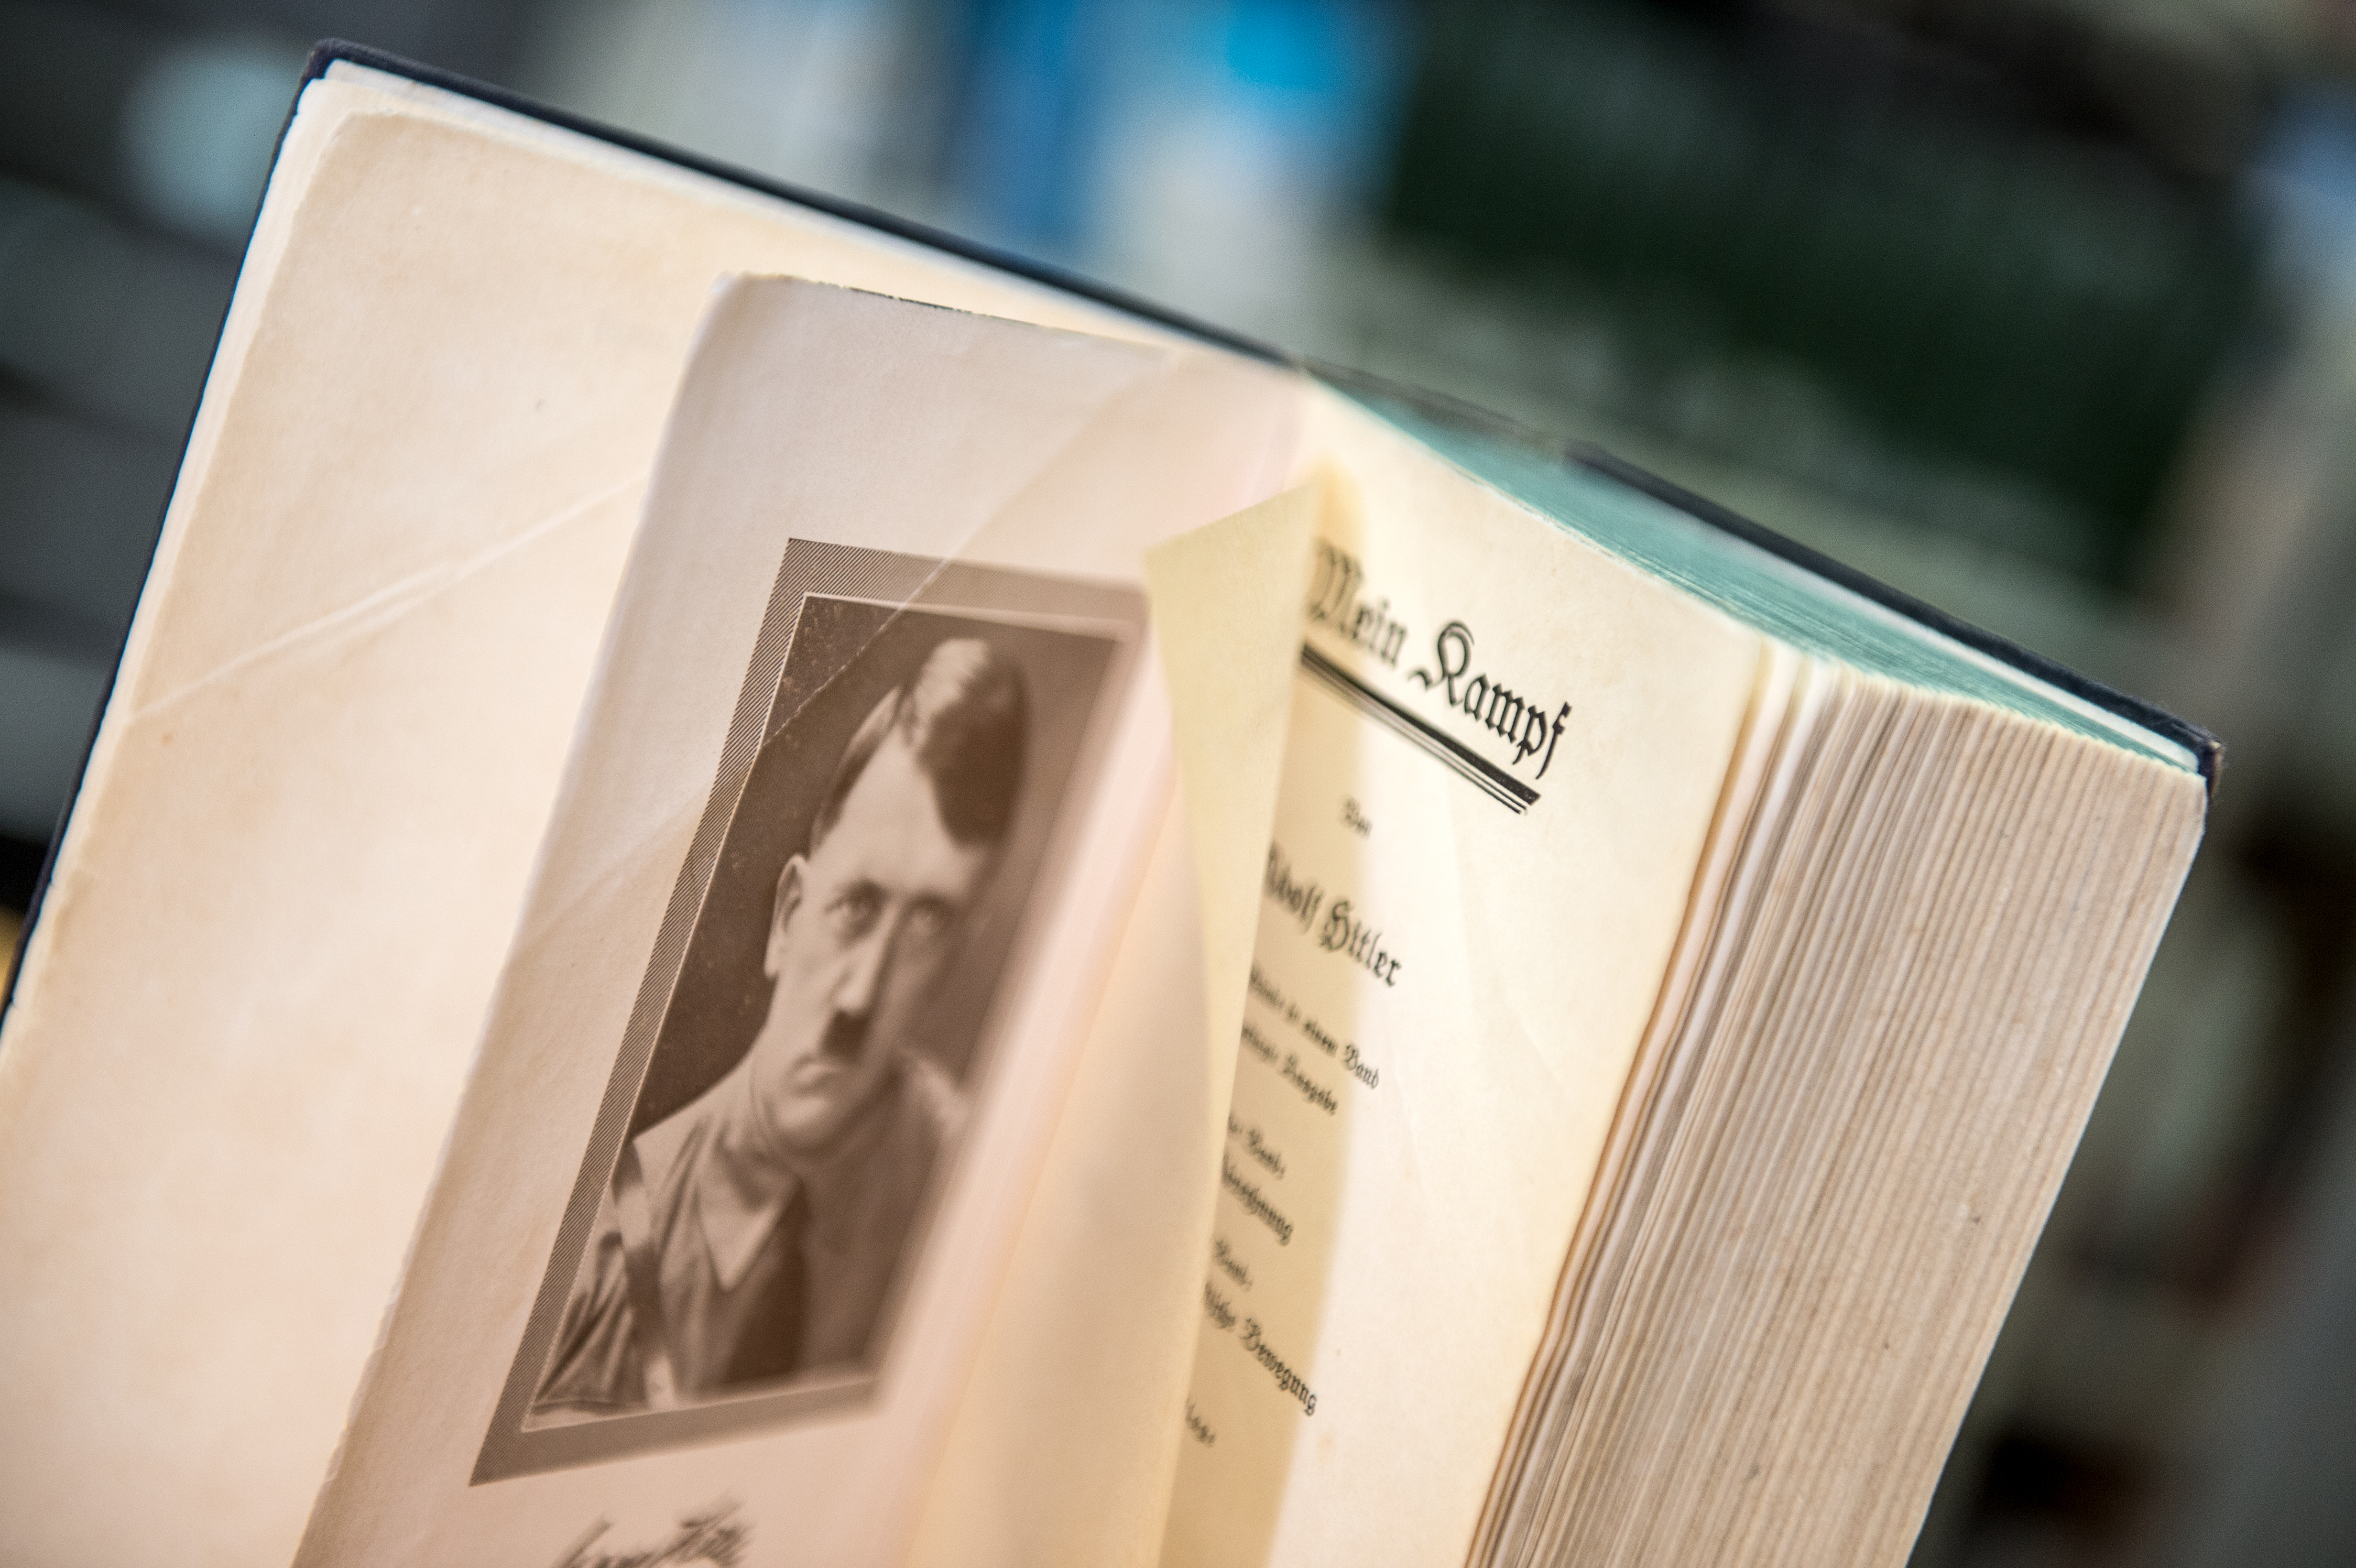 An opened page of the original edition of Hitler's inflammatory pamphlet  'Mein Kampf' shows a portrait of national socialist dictator Adolf Hitler, in a bookshop in Frankfurt, Germany on Jan.7, 2016.